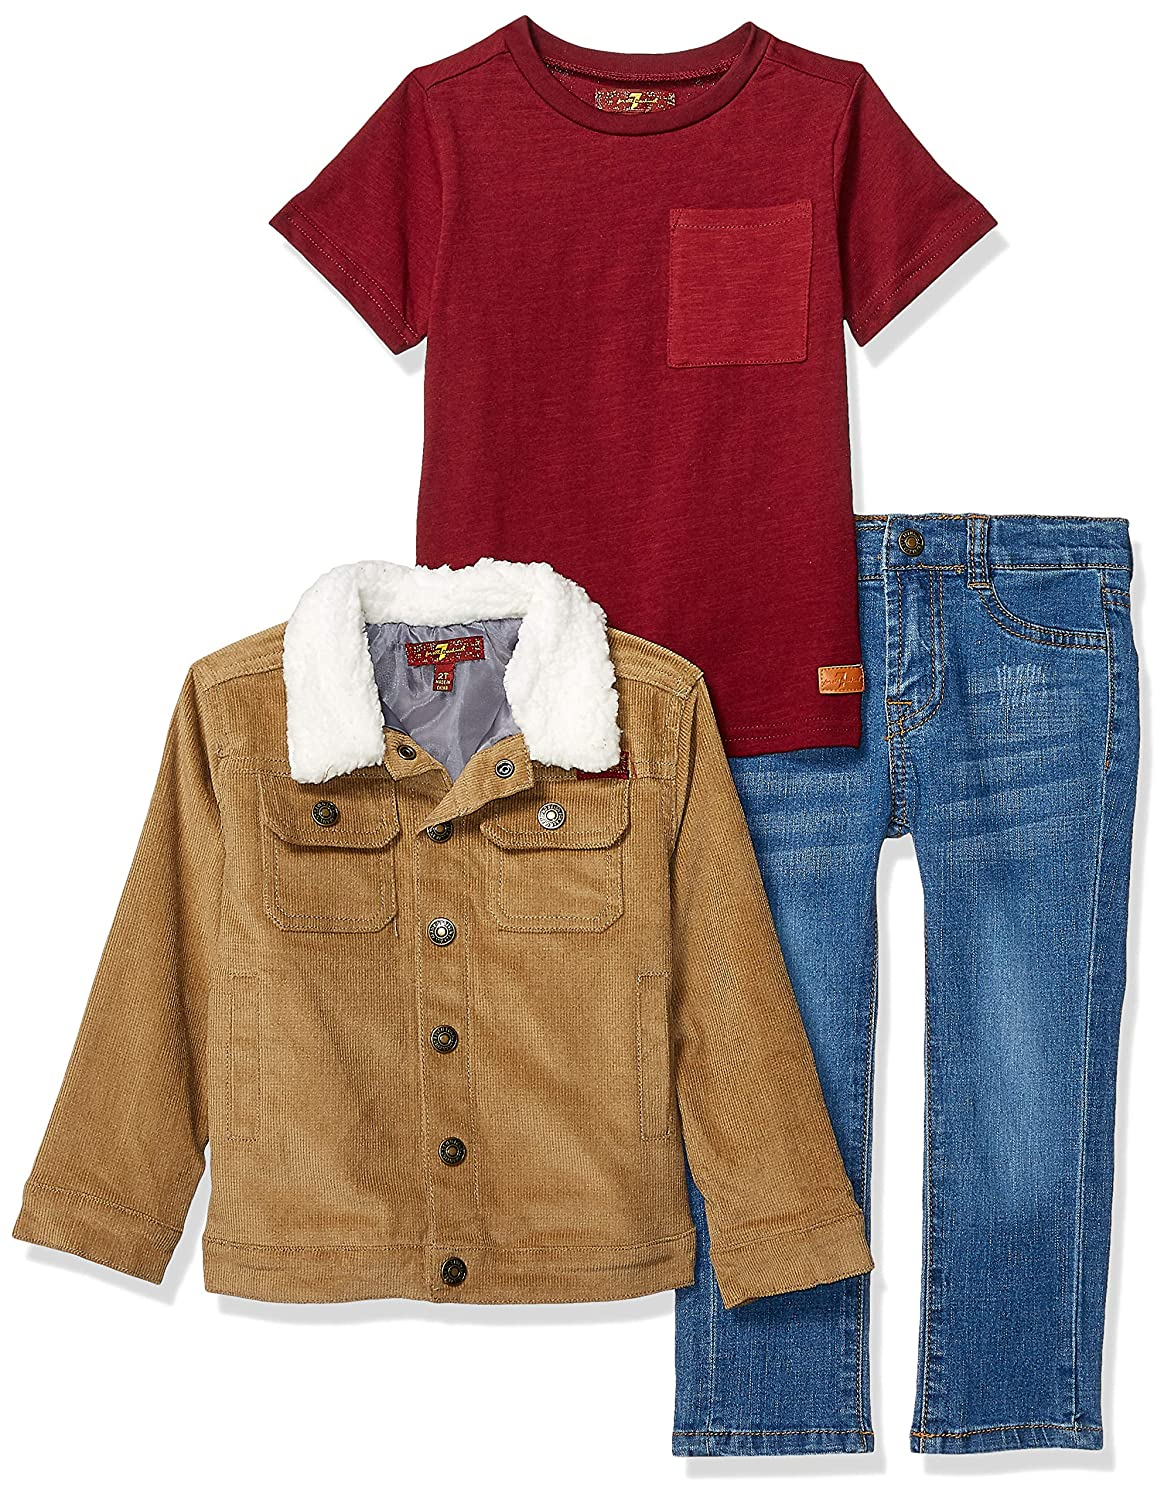 Short Sleeve Tee and Jean Set 7 For All Mankind Boys Toddler Jacket